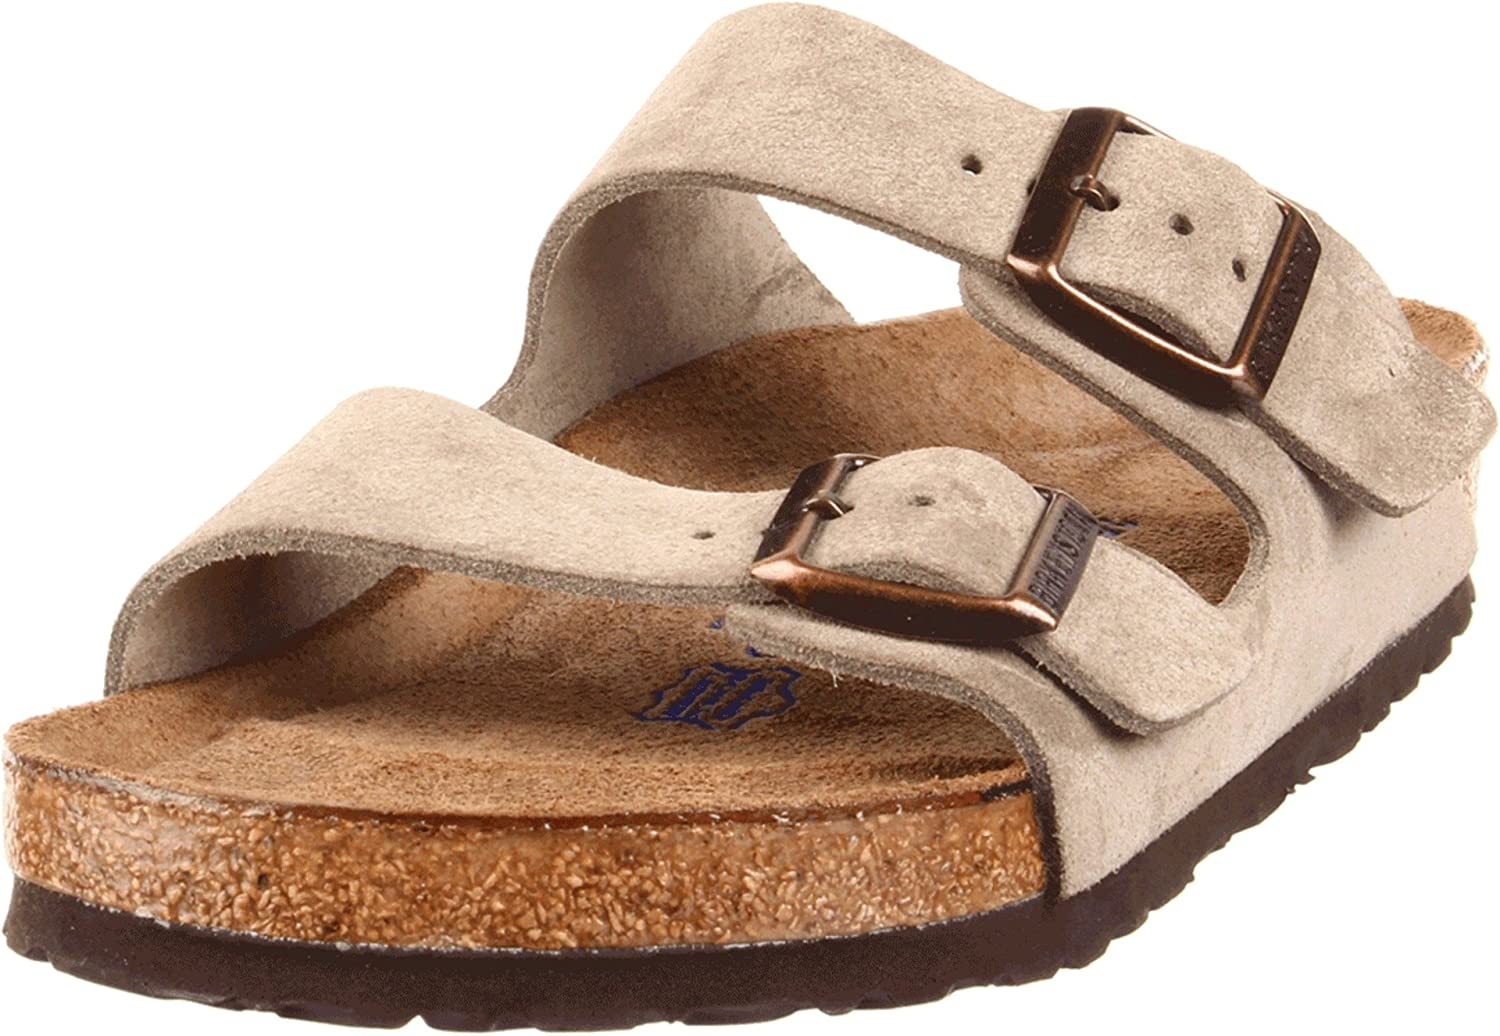 Birkenstock Arizona Soft Footbed Leather Sandal B000W0BVII 39 M EU/8-8.5 B(M) US Women|Taupe Suede Soft Footbed